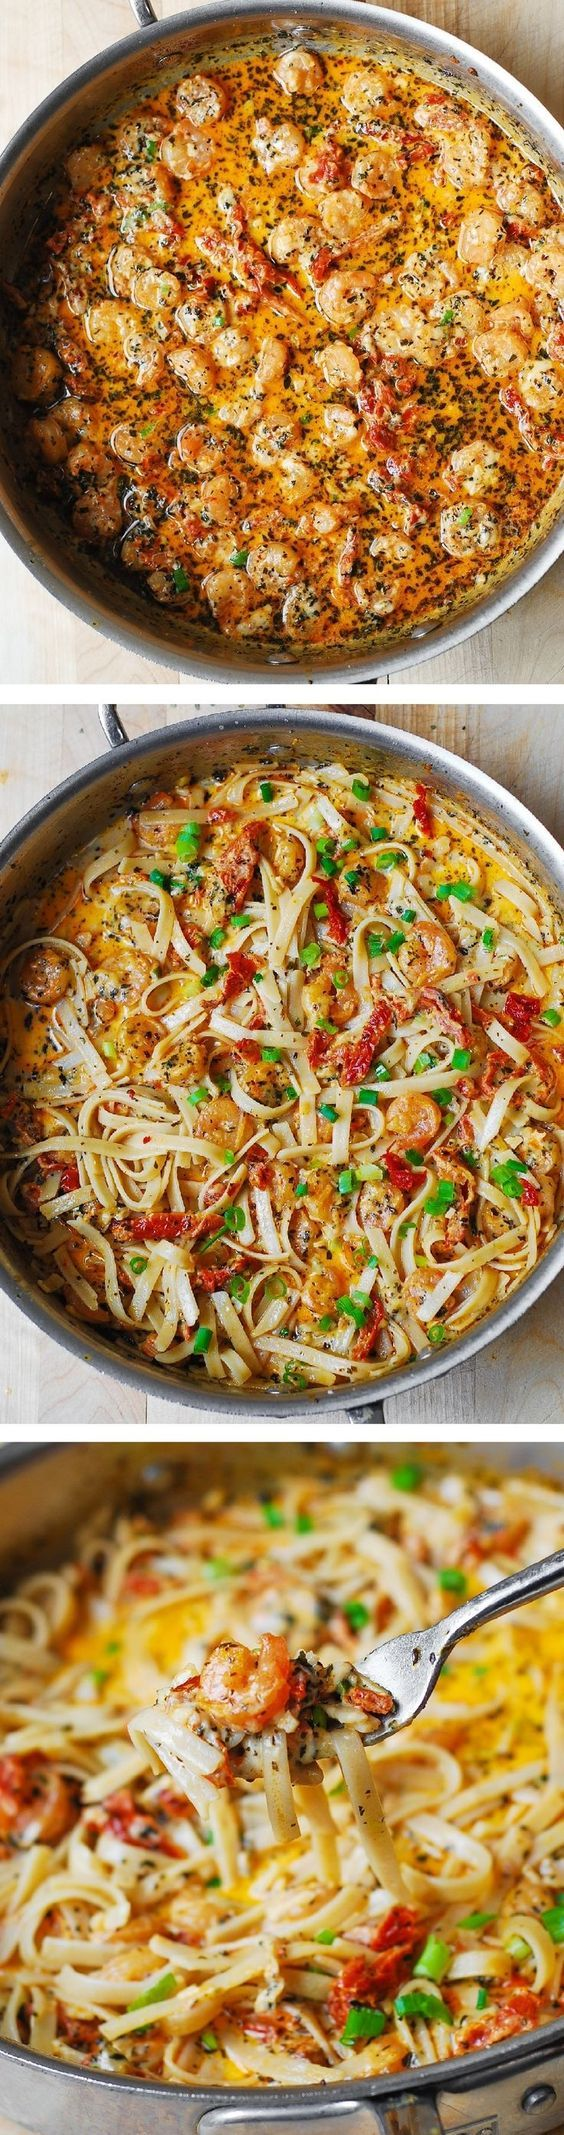 Garlic Shrimp and Sun-Dried Tomatoes with Pasta in Spicy Creamy Sauce, spiced up with basil and crushed red pepper. Italian comfort food that's super easy to make!